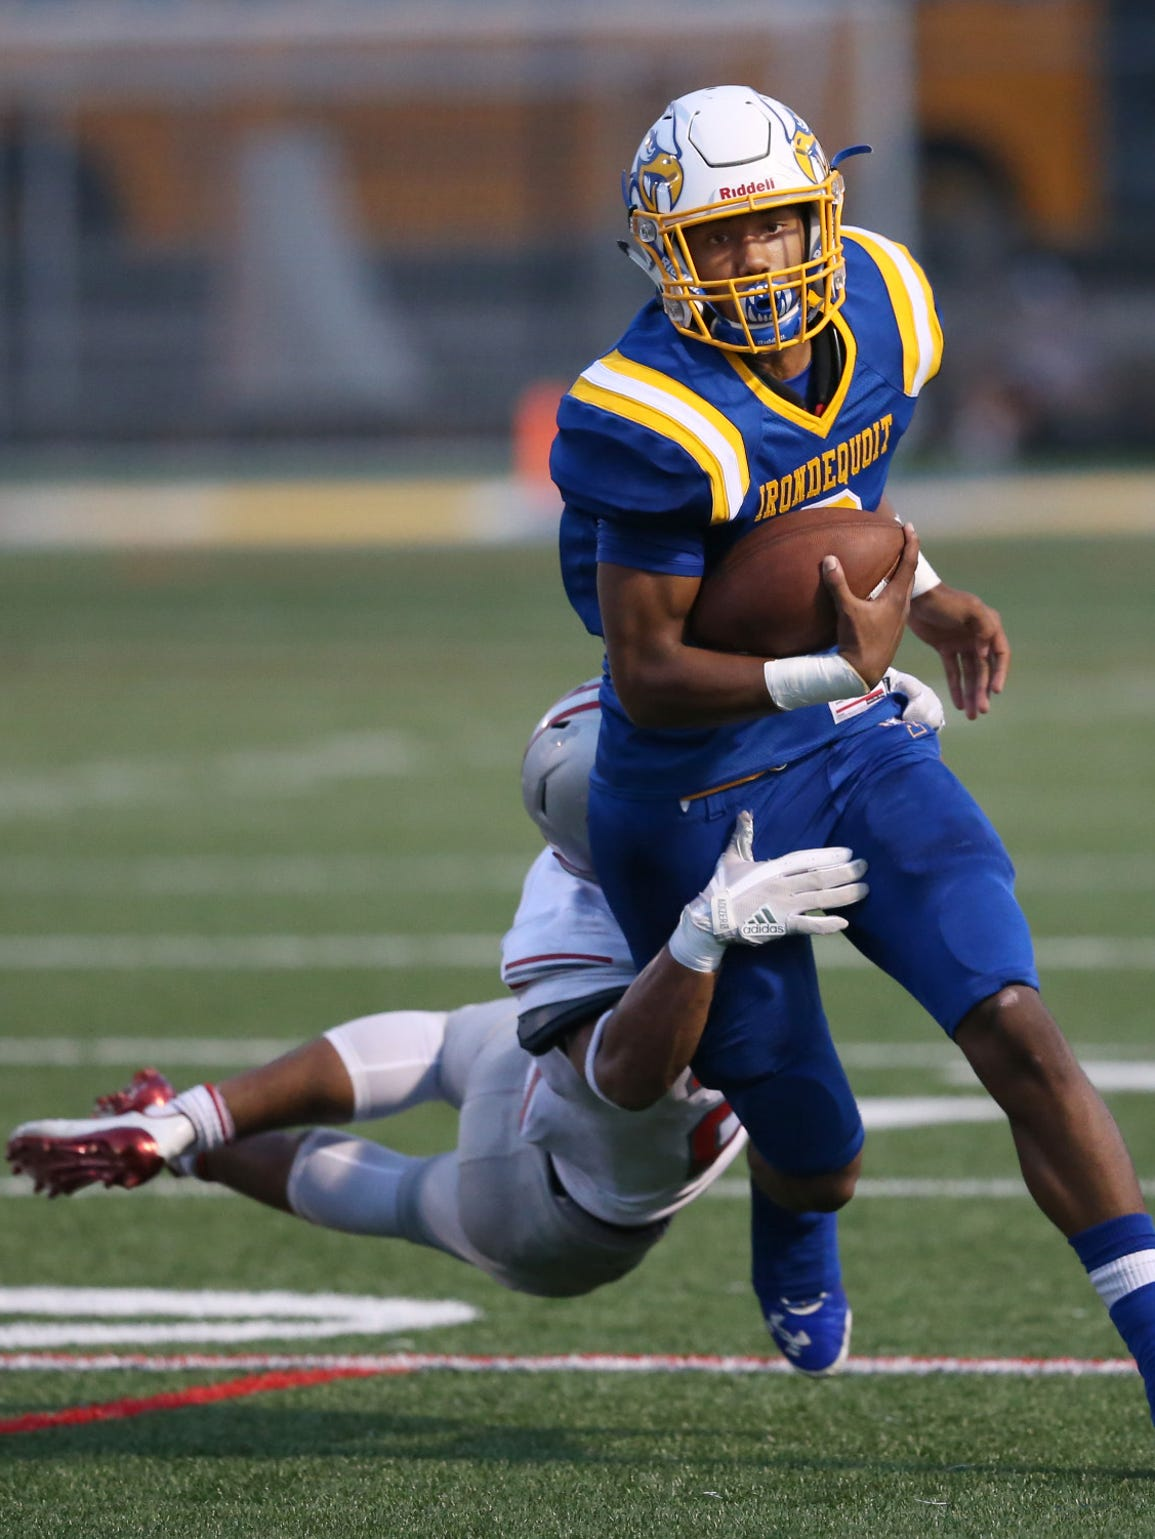 Irondequoit quarterback Freddy June Jr. is tackled